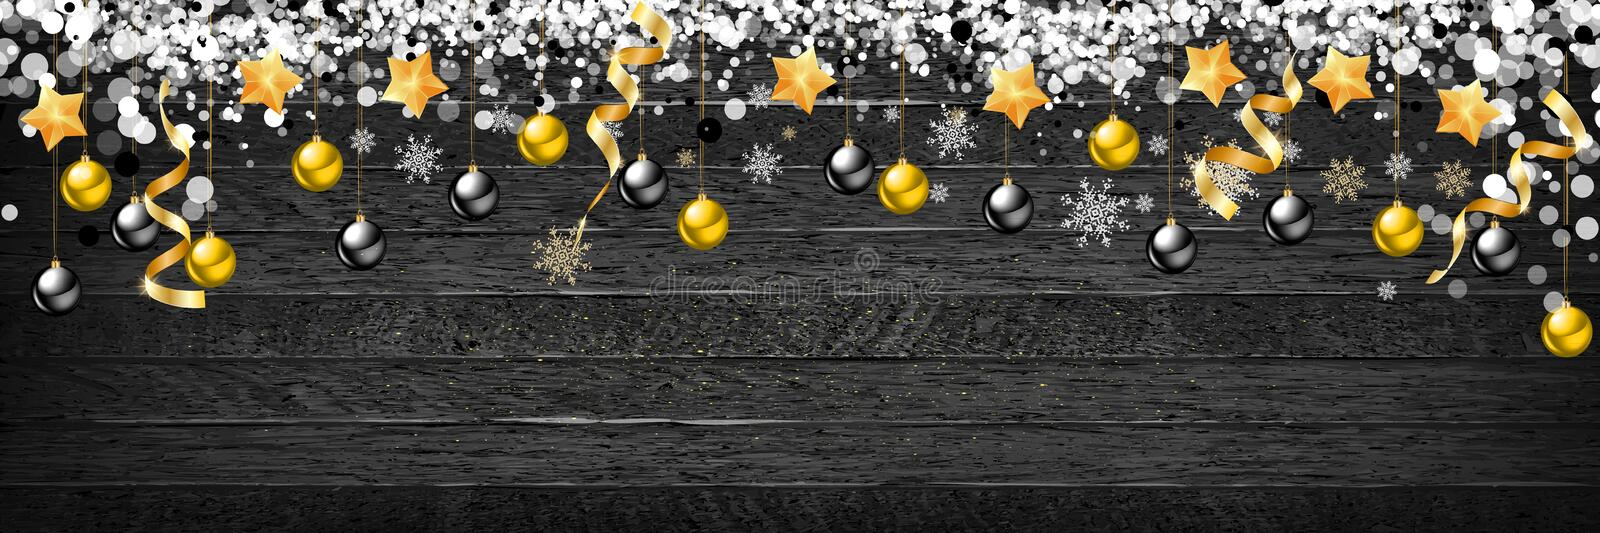 Christmas background with wooden decorations and spot lights. Free space for text. Celebration and decorative design. Vector. Illustration stock illustration